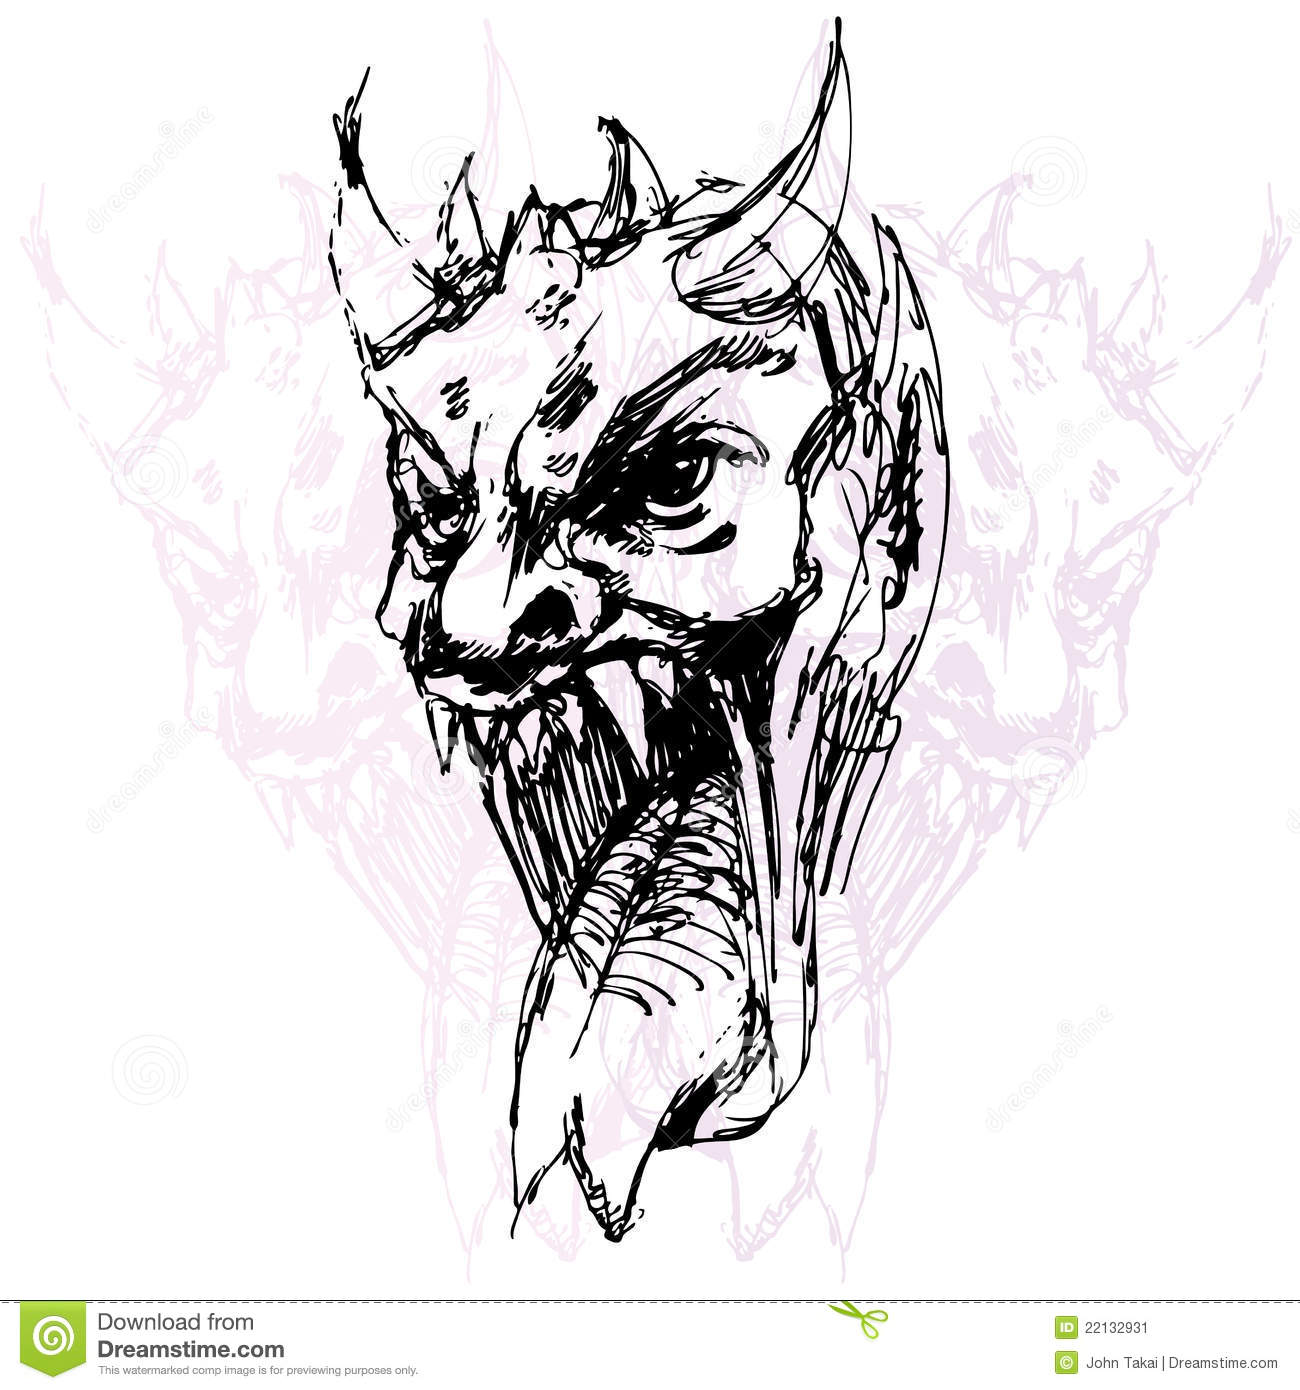 Demon Face Drawing Stock Vector. Illustration Of Graphic